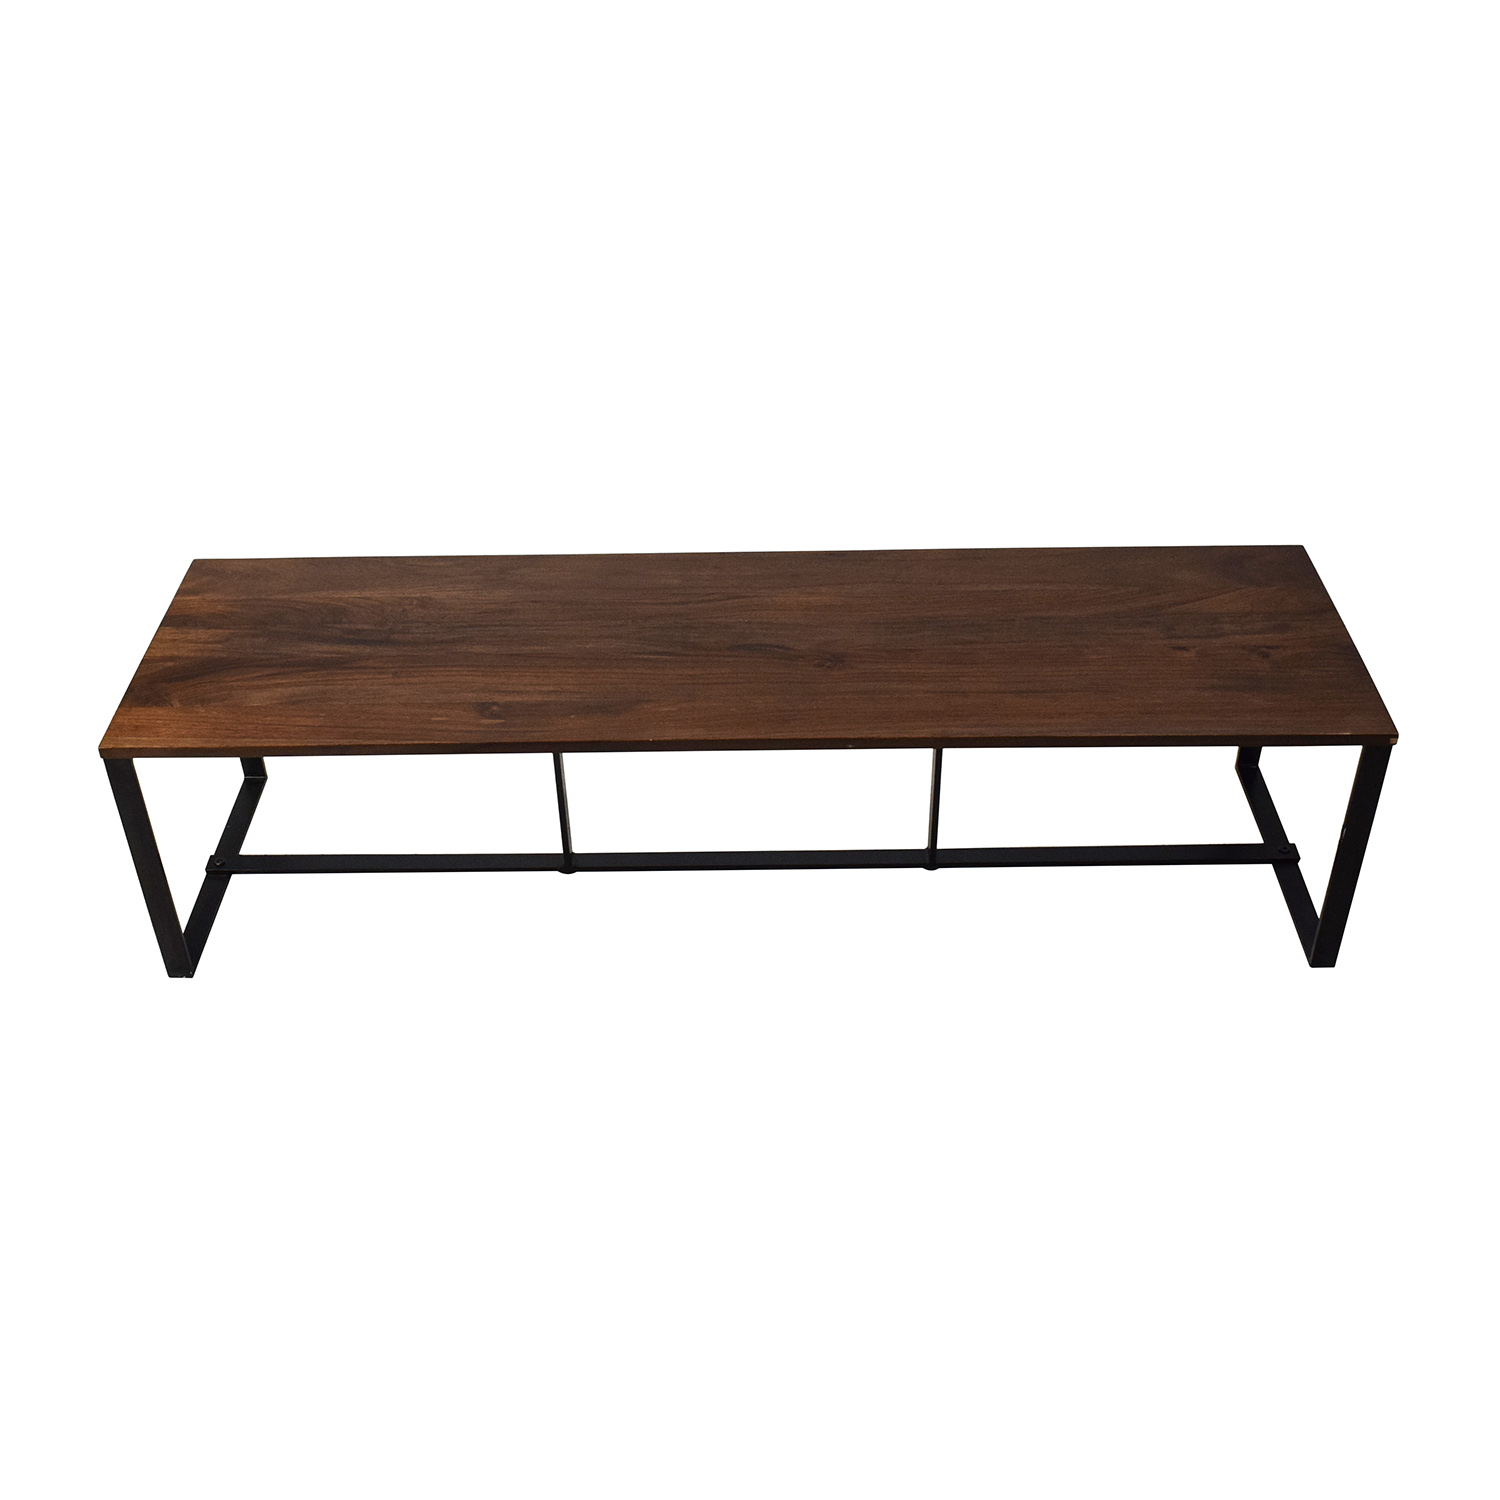 77% OFF Wooden & Tiled Coffee Table Tables